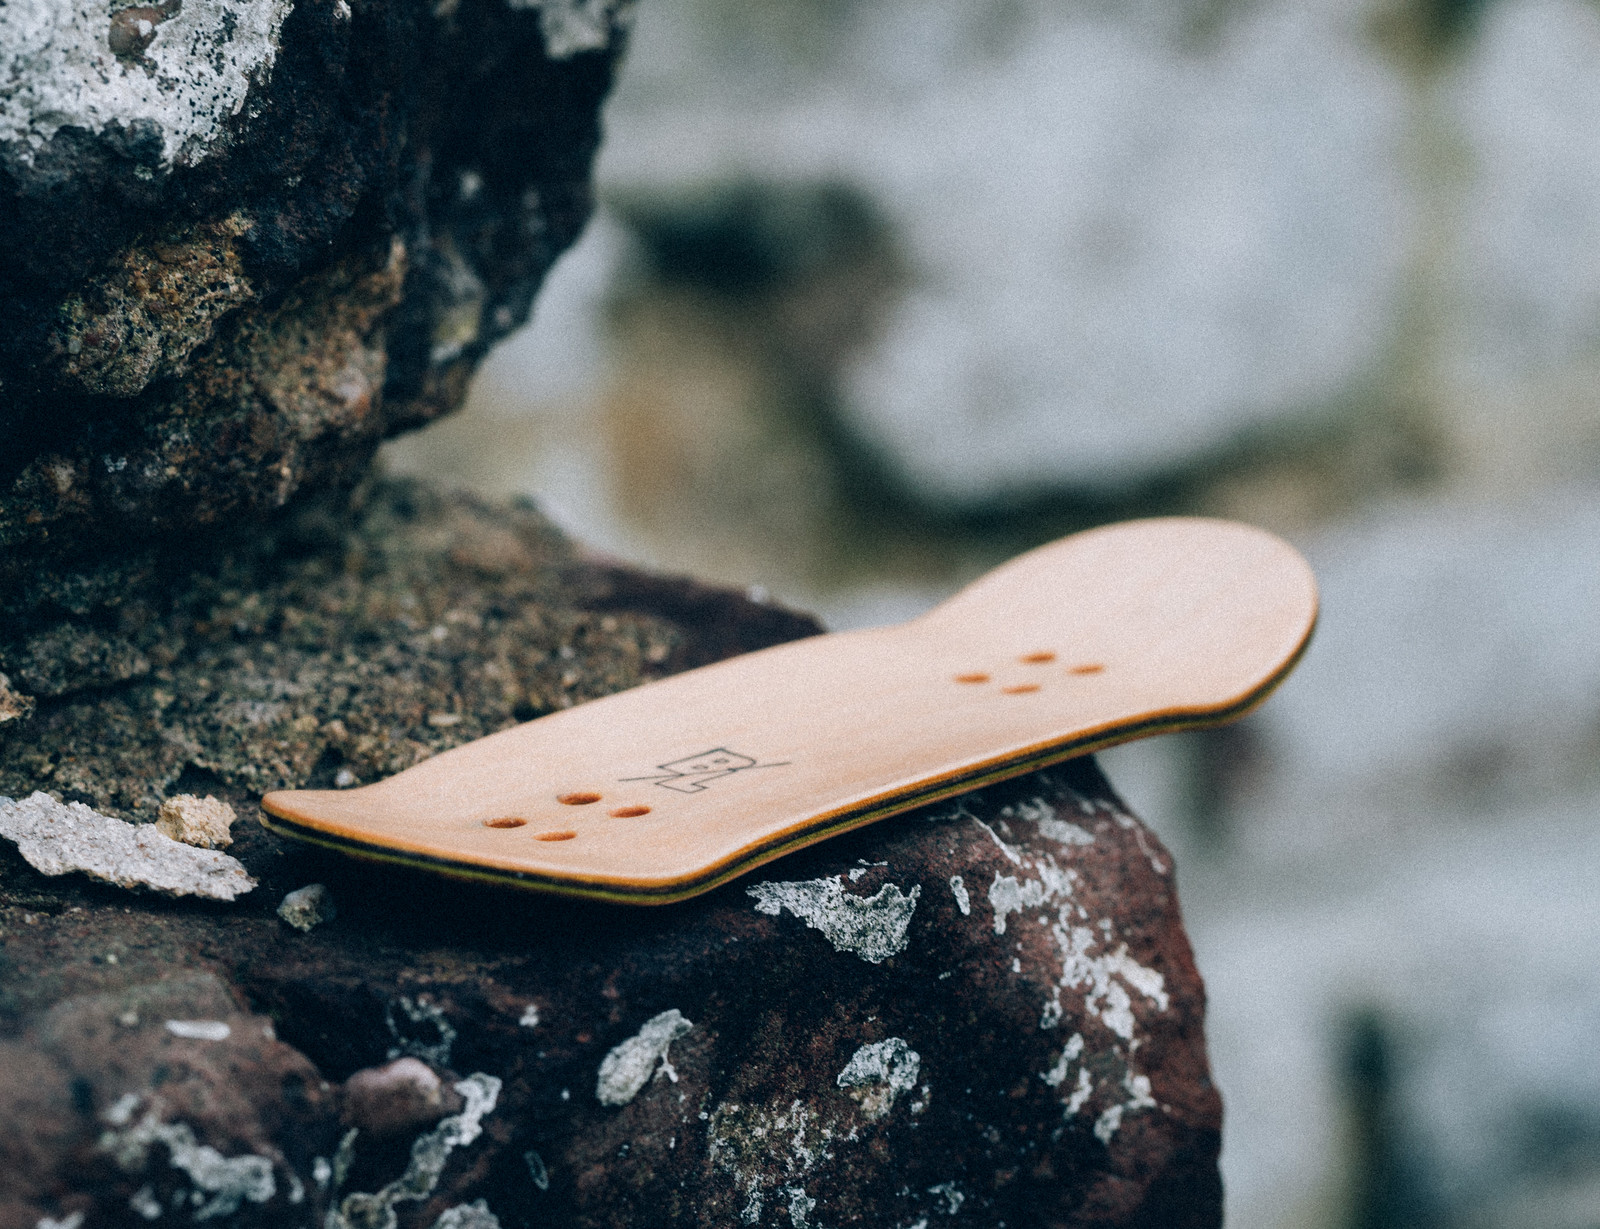 Fingerboard TV - Daily fingerboard news